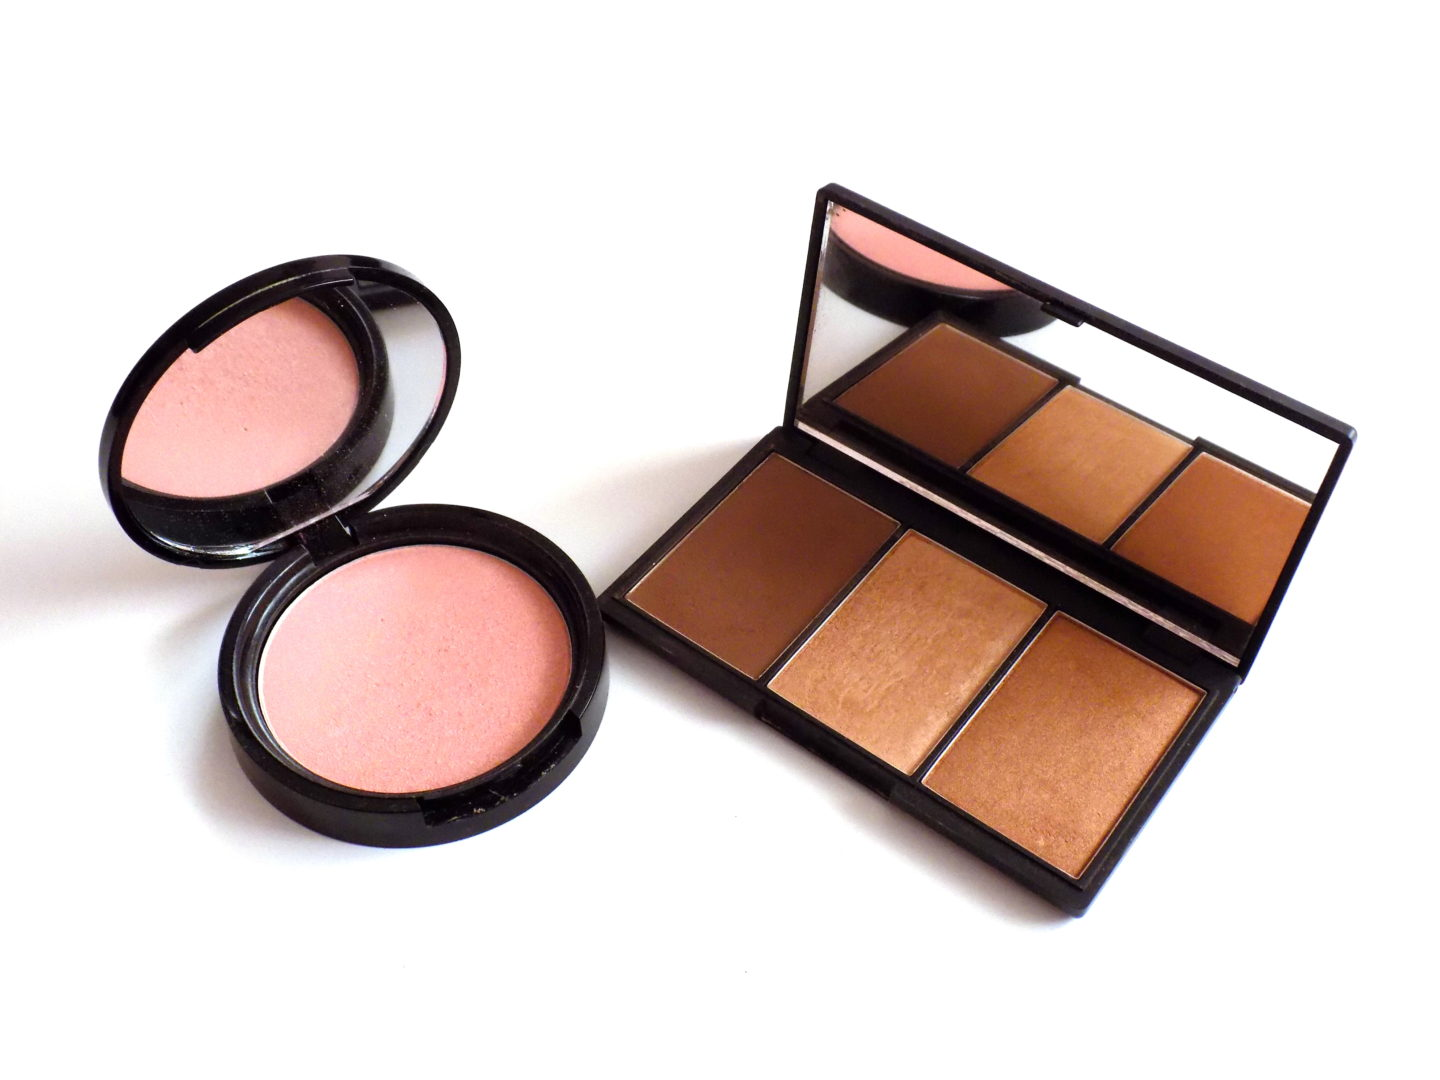 My Favourite Contouring Duo